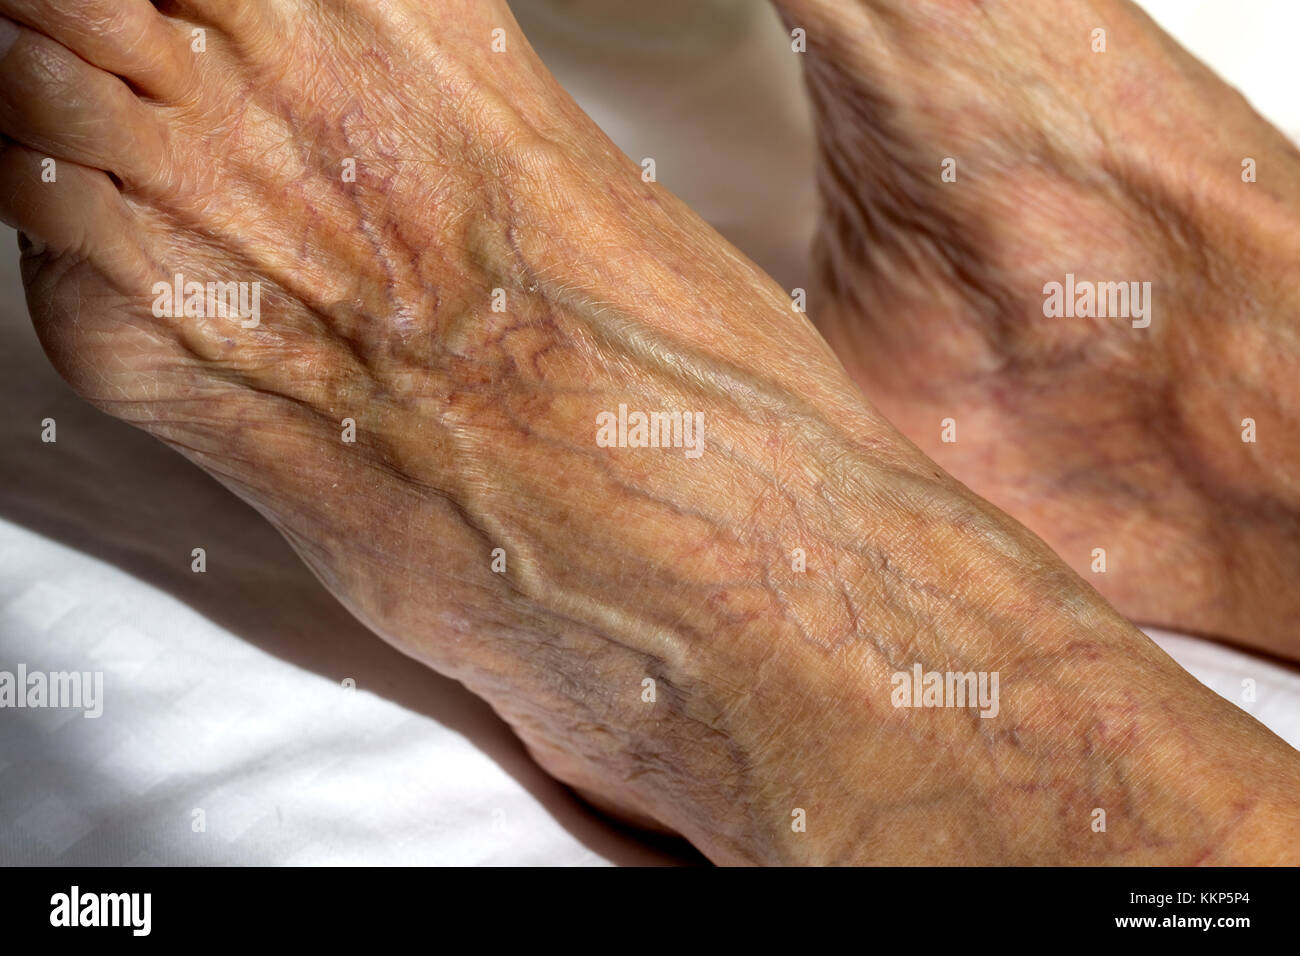 Enlarged Swollen Varicose And Spider Veins In Foot Of Elderly Woman